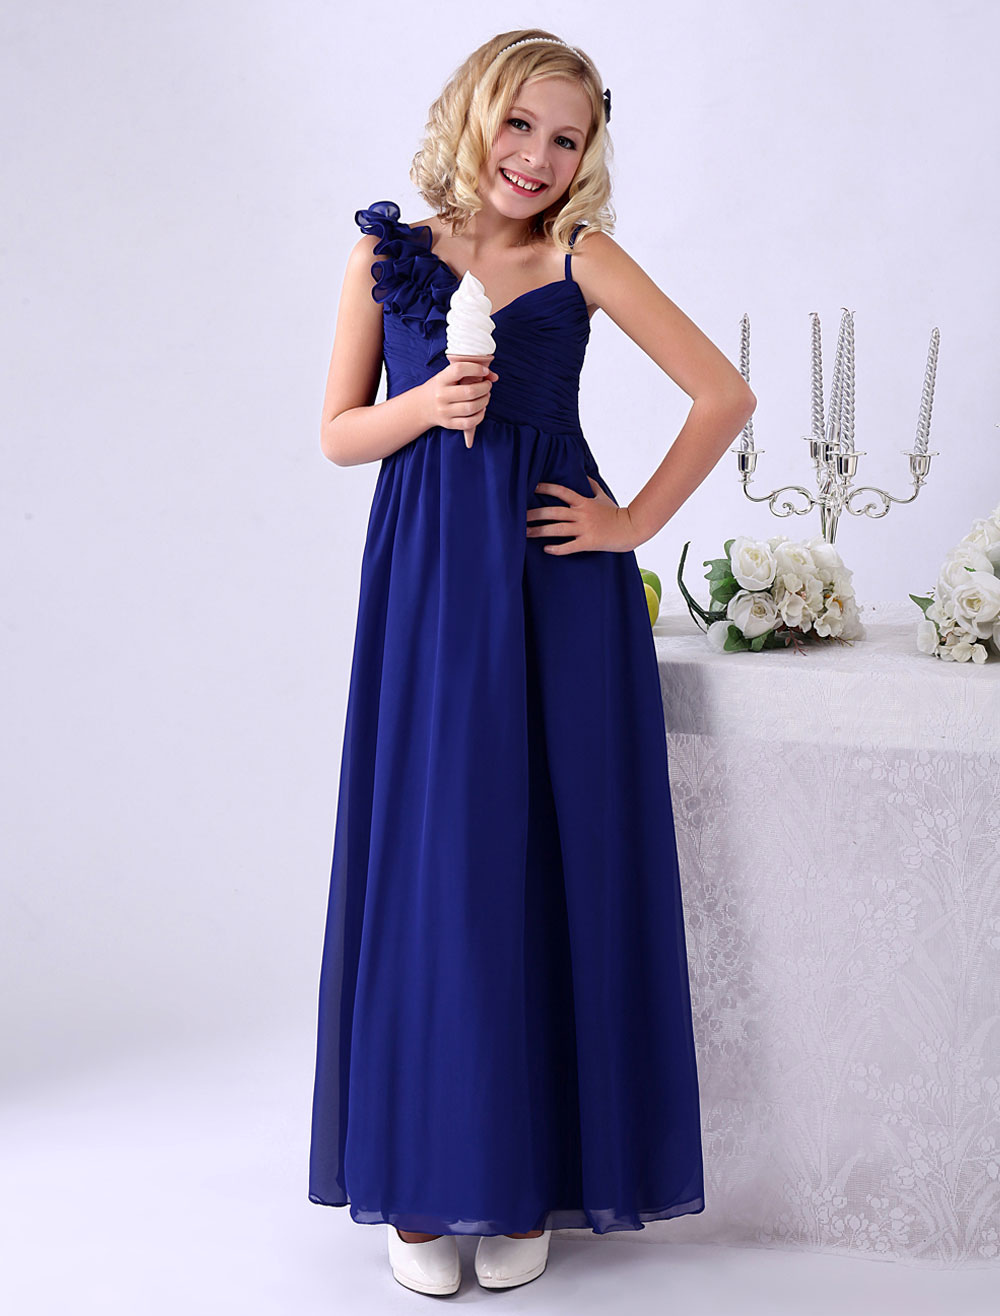 Royal Blue A-line Floor-Length Flower Chiffon Junior Bridesmaid Dress with V-Neck